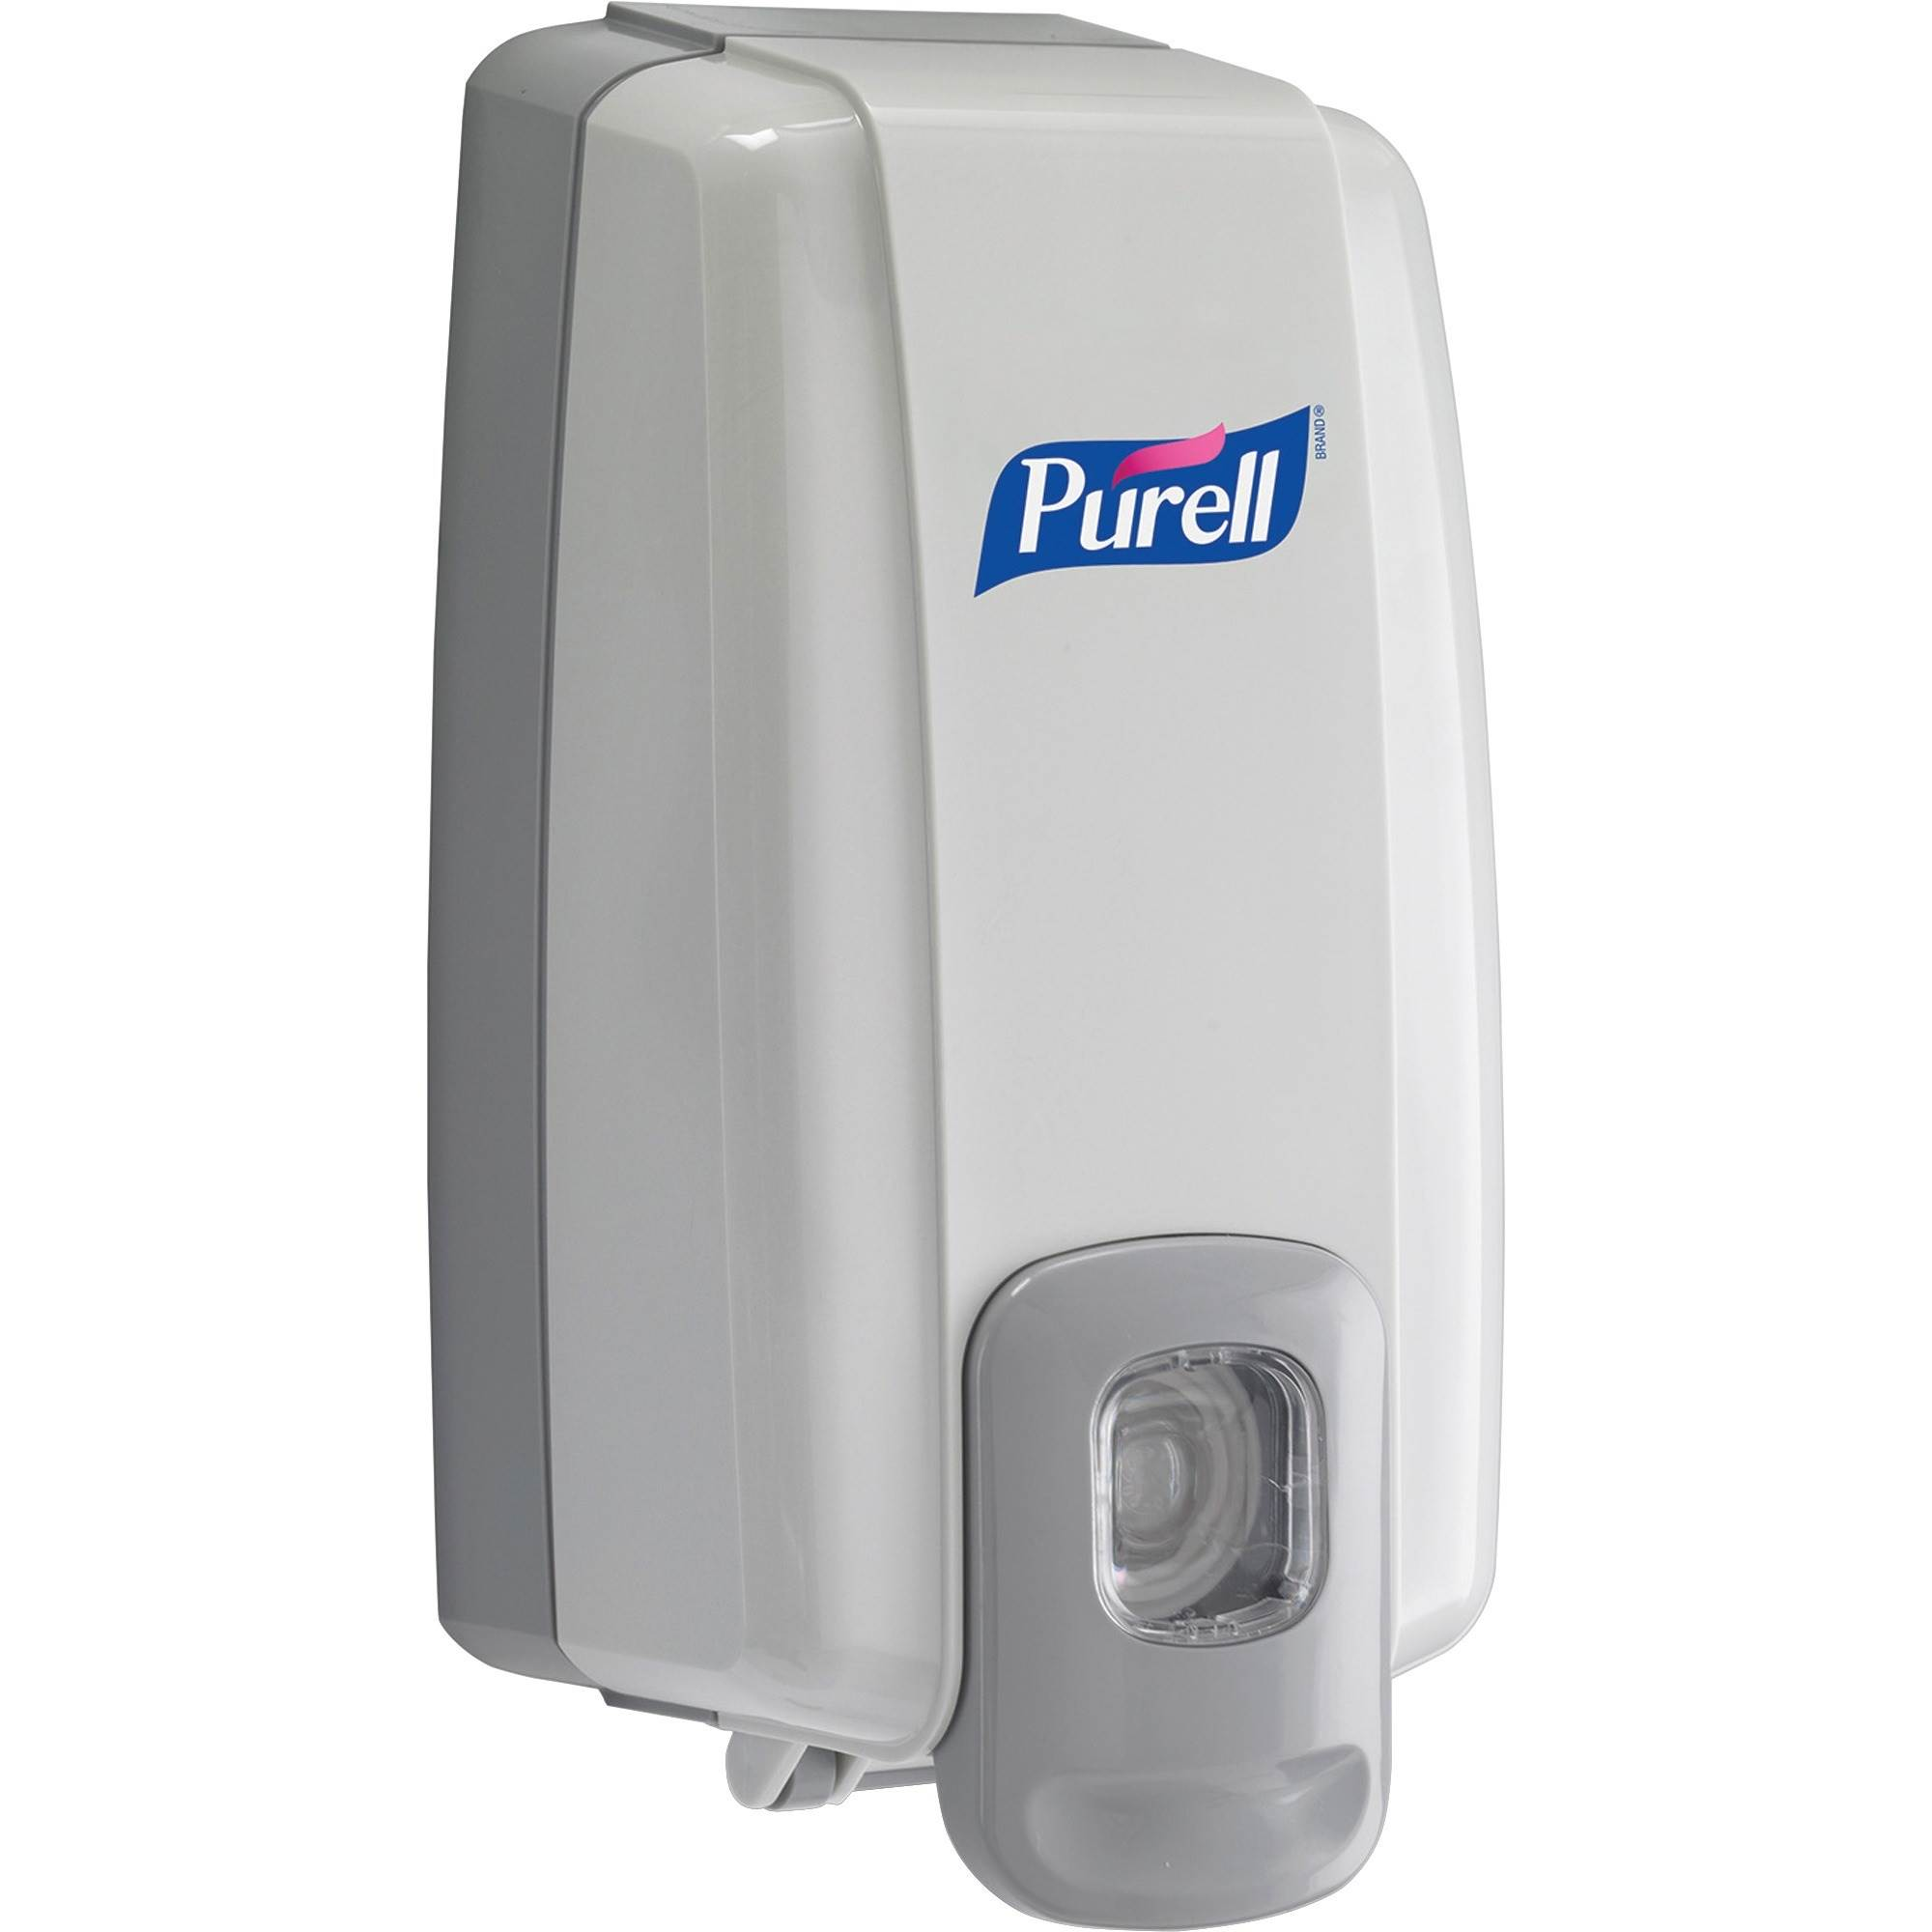 purell-reg-zep-hand-sanitizer-dispenser